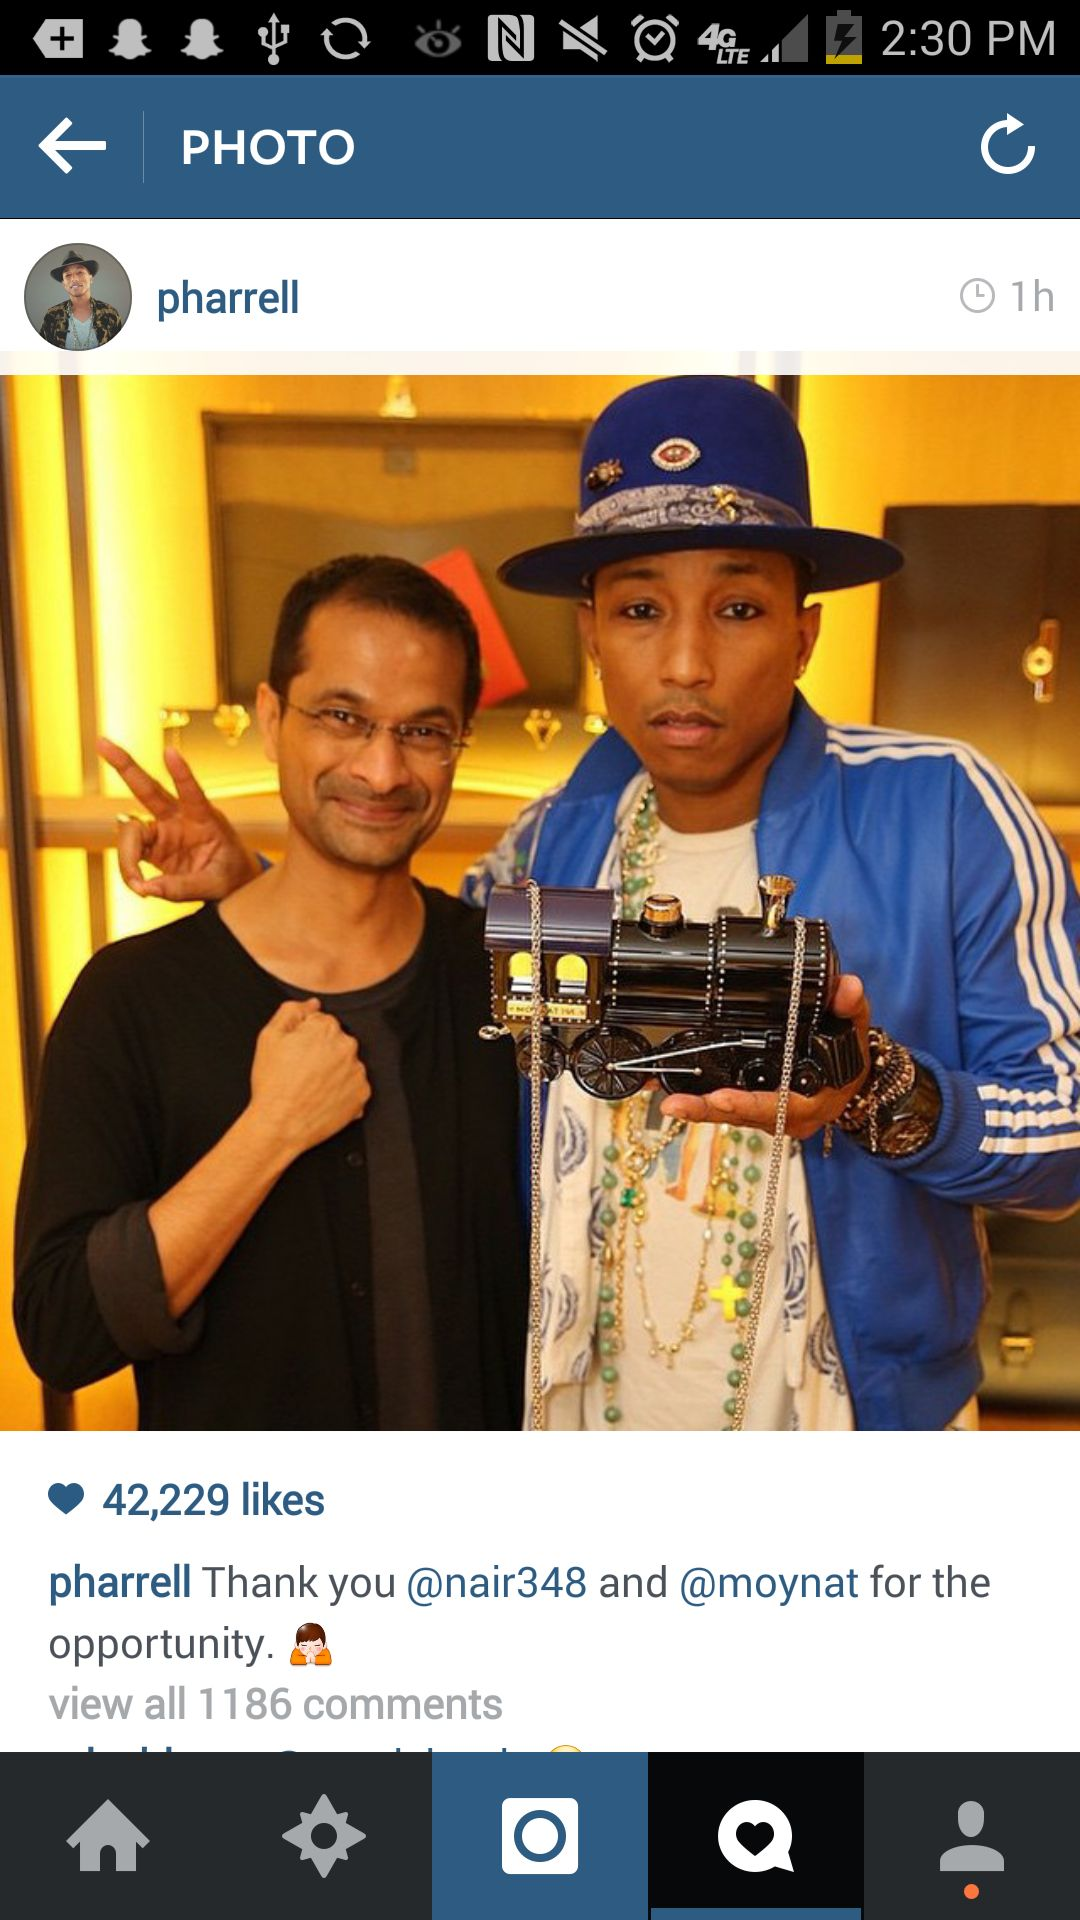 Who Do Pharrell and I Have in Common? MOYNAT's Creative Director Ramesh Nair